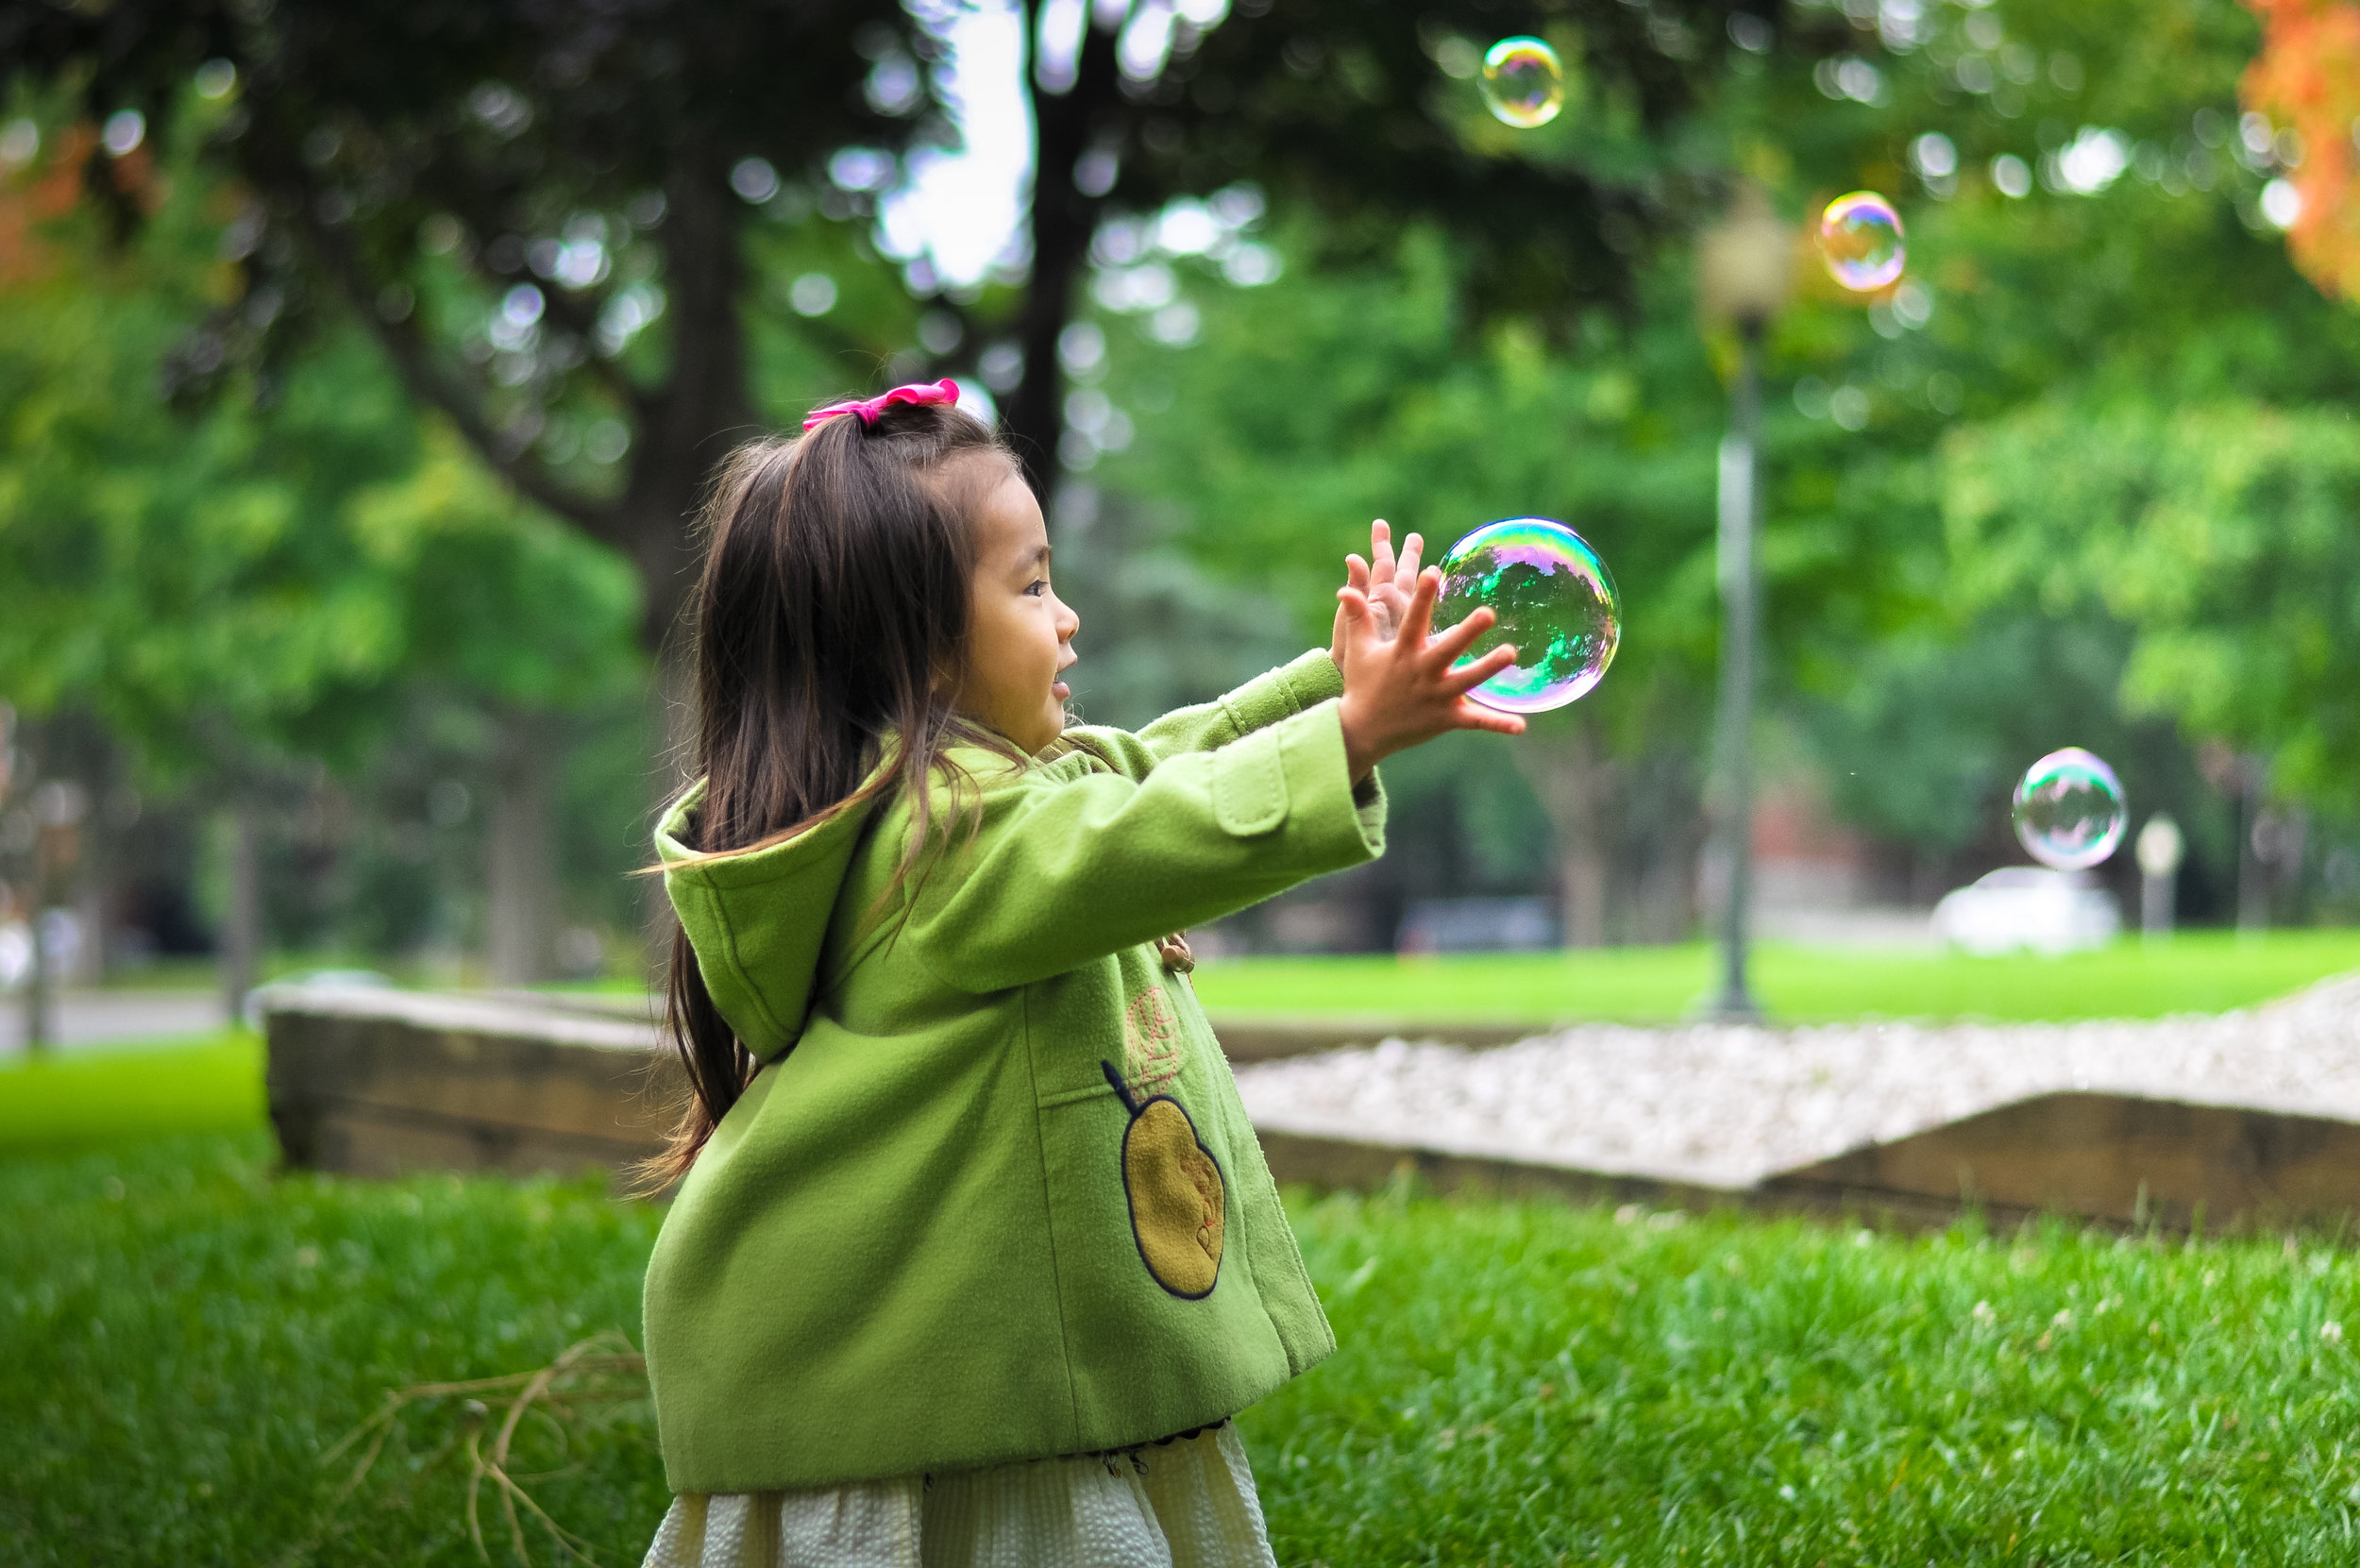 Preschool girl in a park, reaching for soap bubble as other bubbles float by.